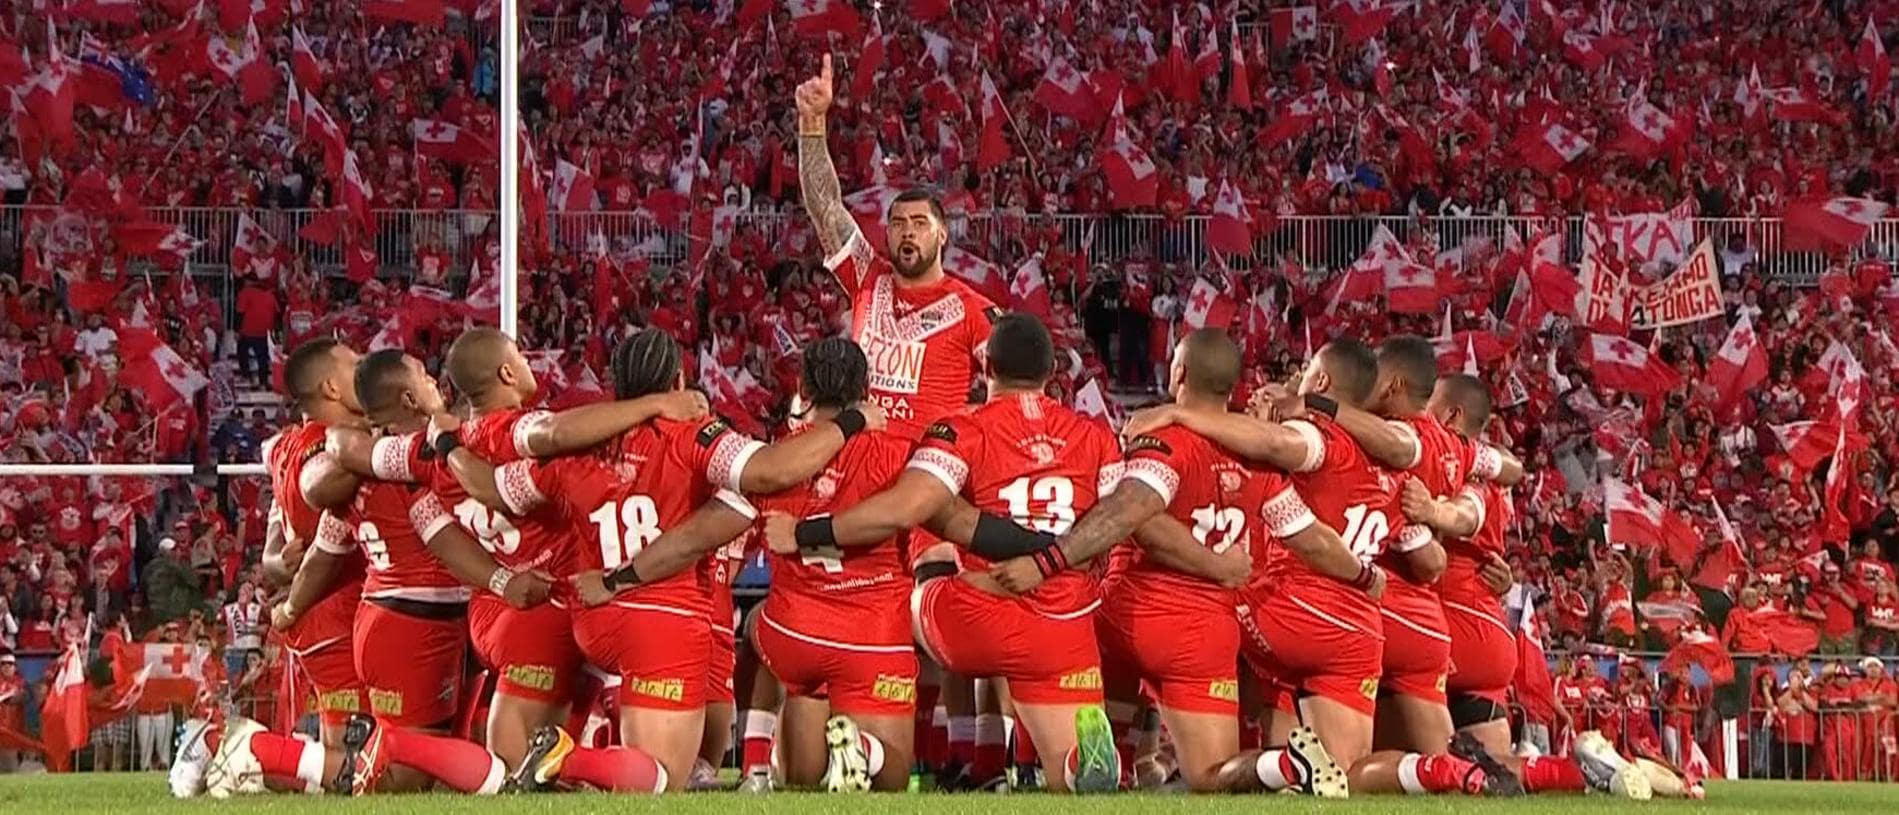 Andrew Fifita during the Sipi Tau.